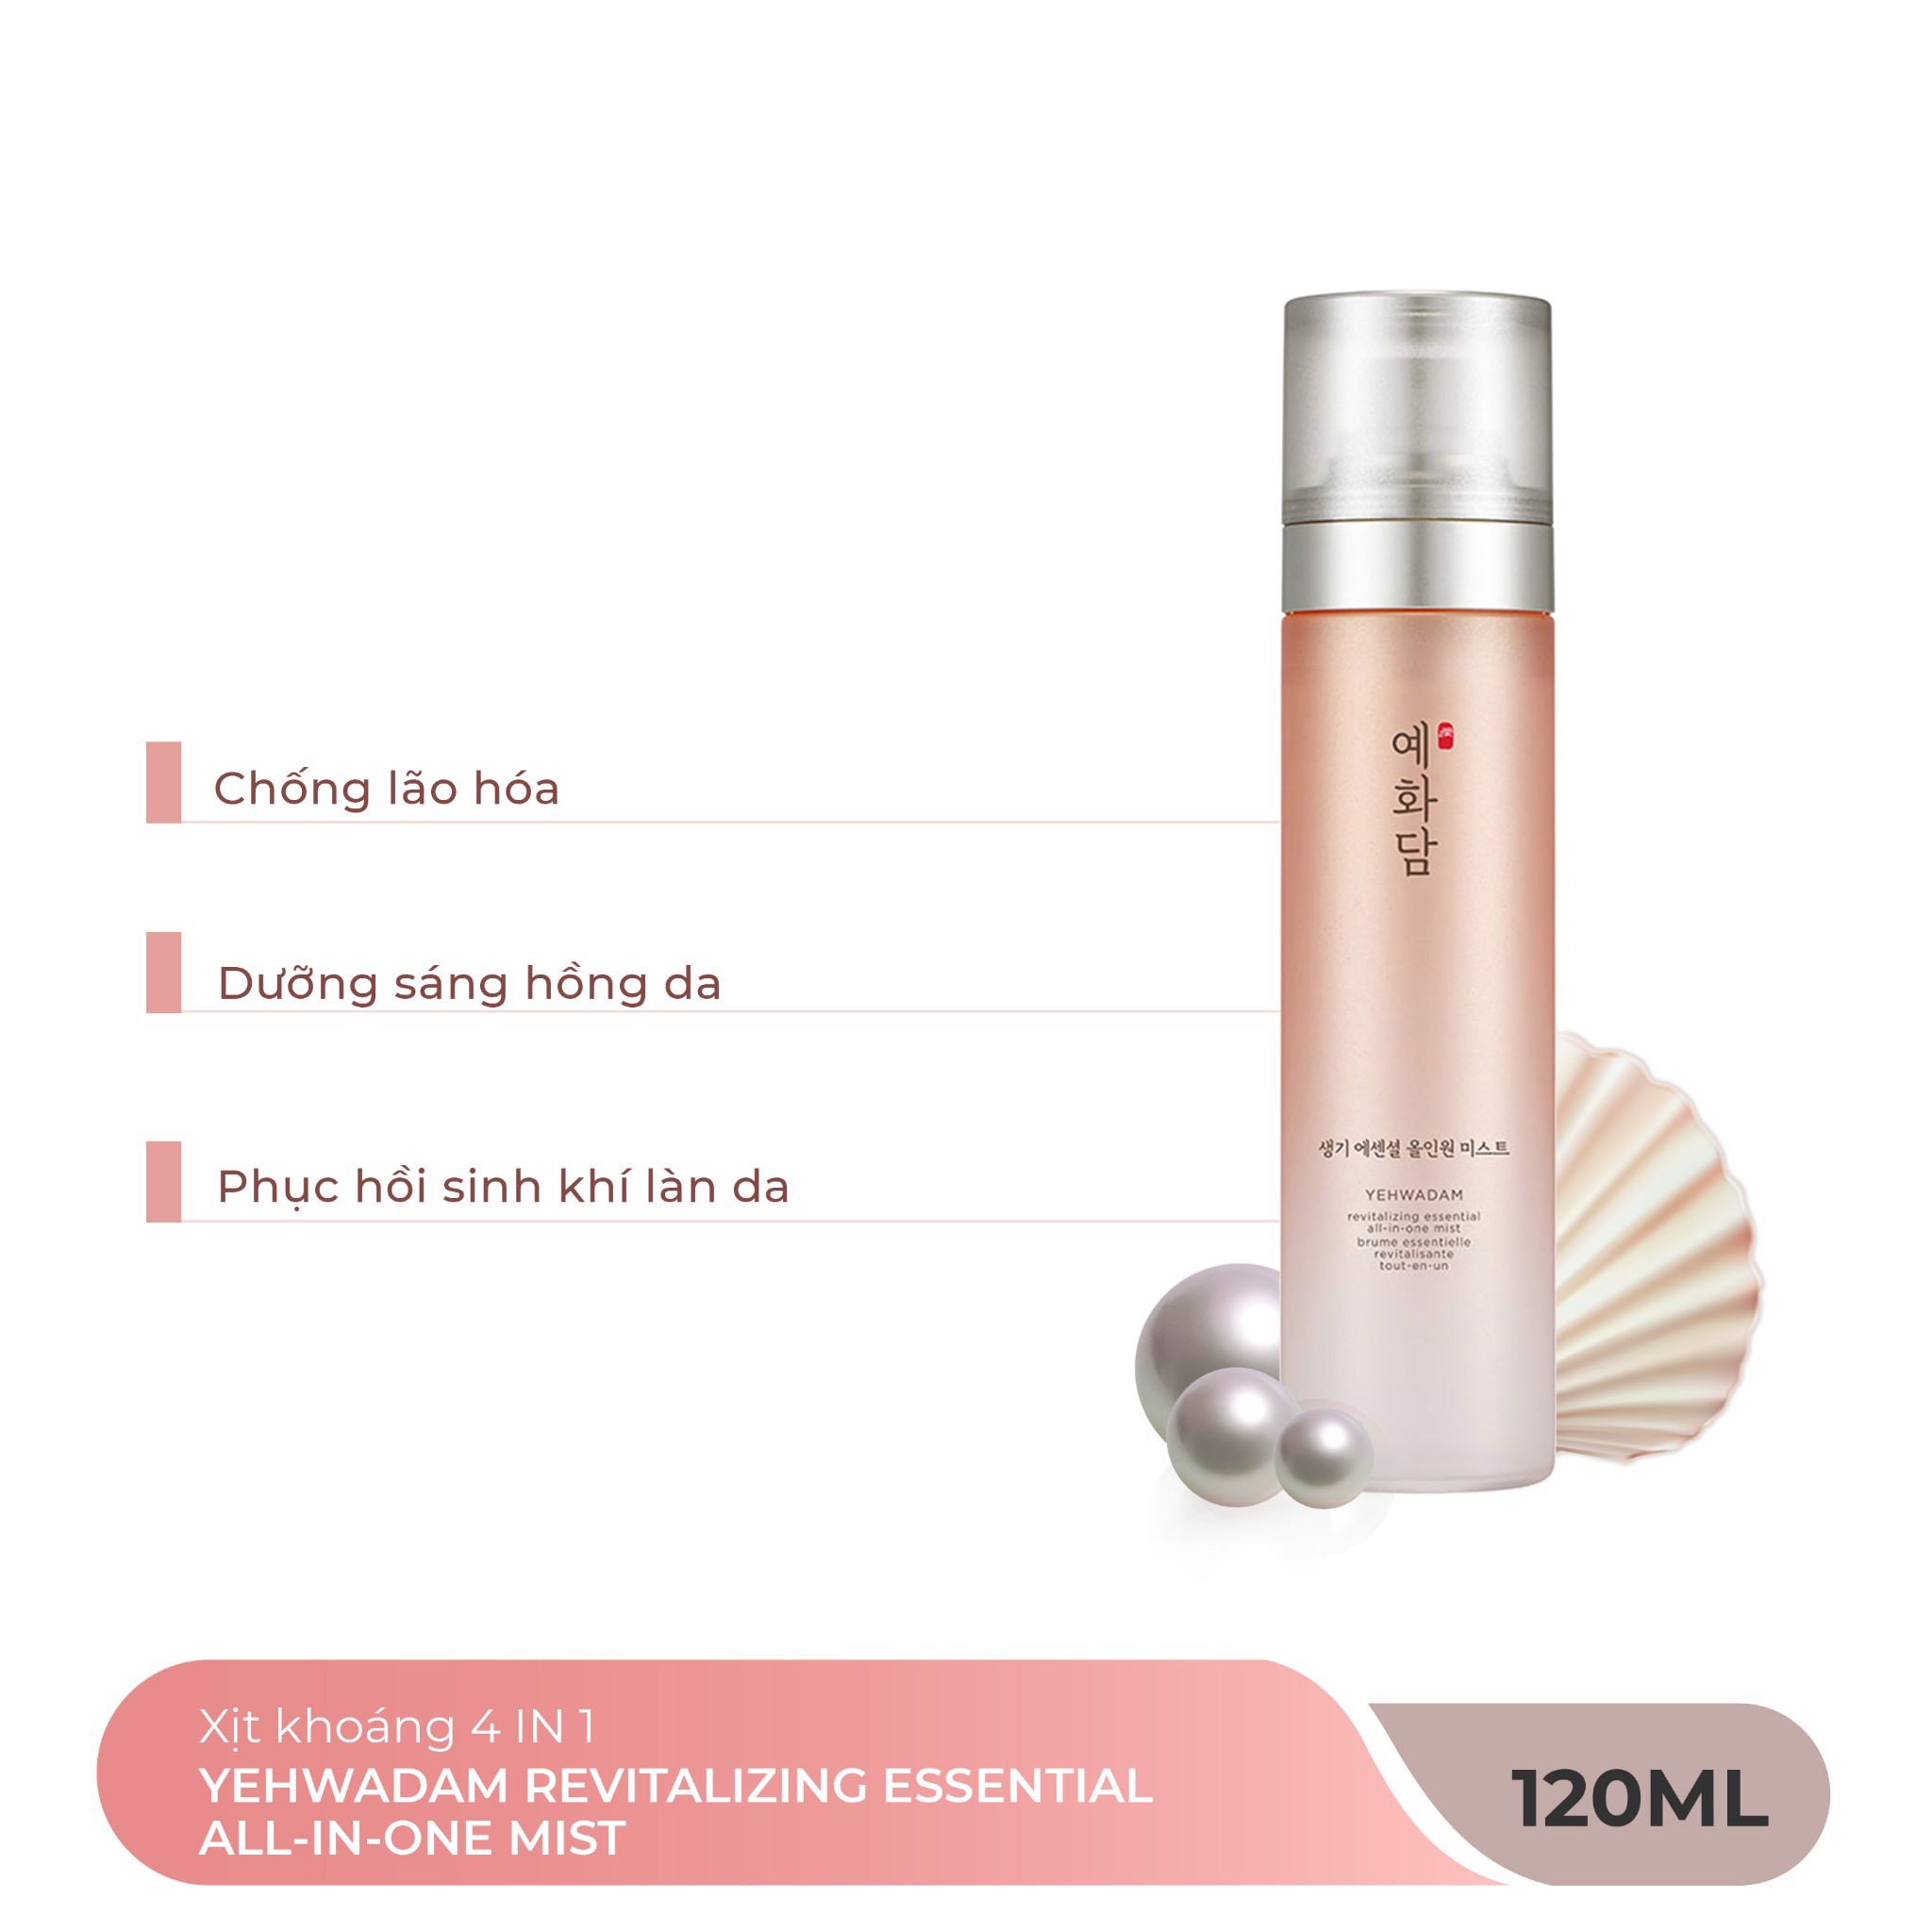 Xịt khoáng 4 IN 1 YEHWADAM REVITALIZING ESSENTIAL ALL-IN-ONE MIST